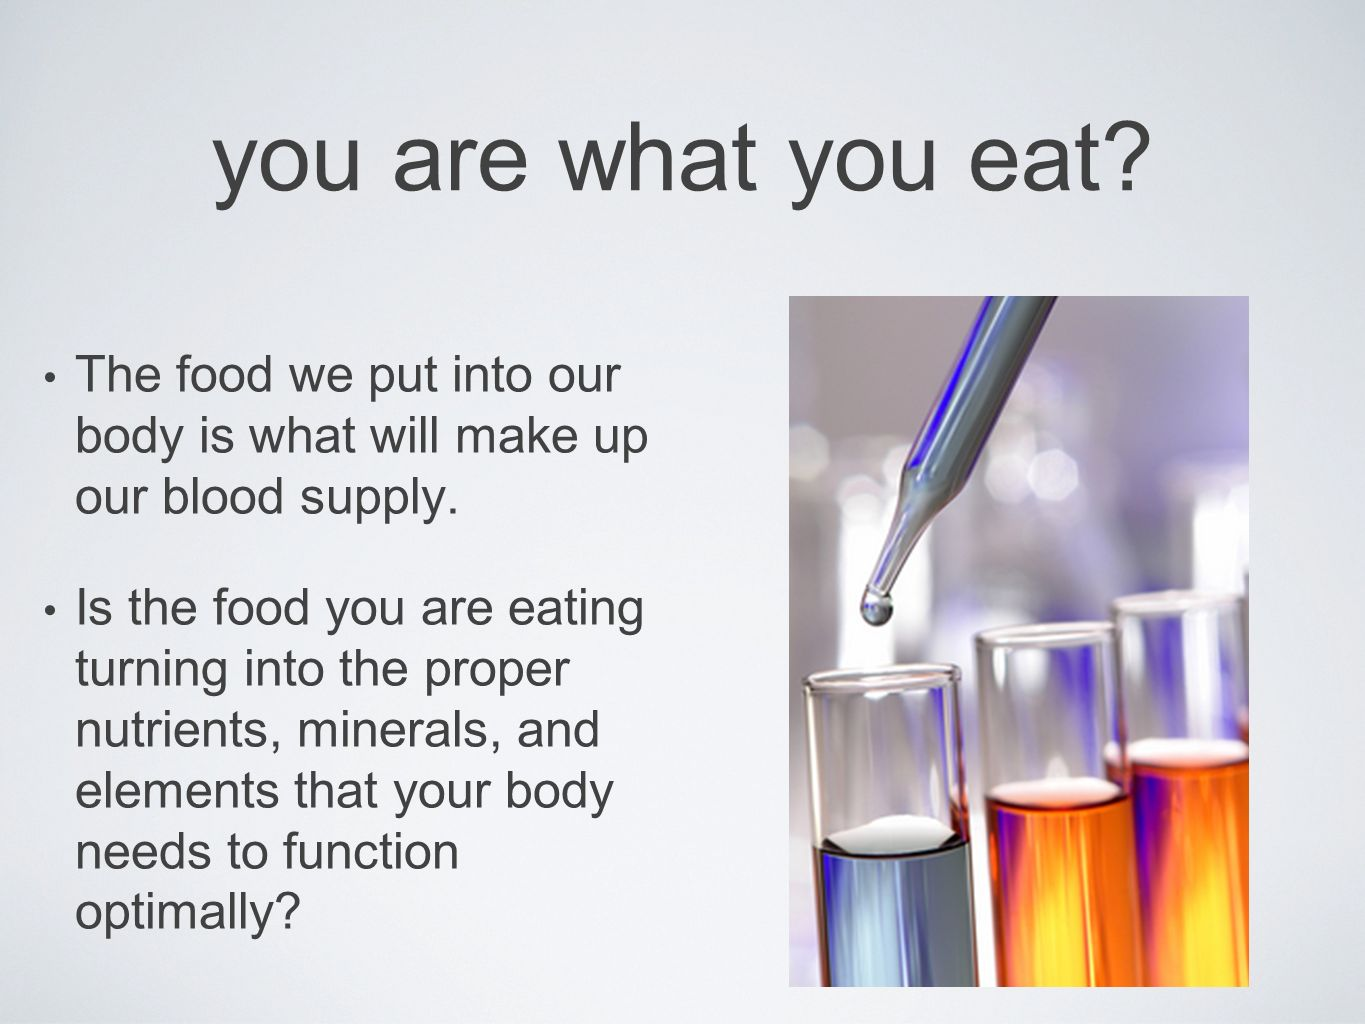 you are what you eat The food we put into our body is what will make up our blood supply.